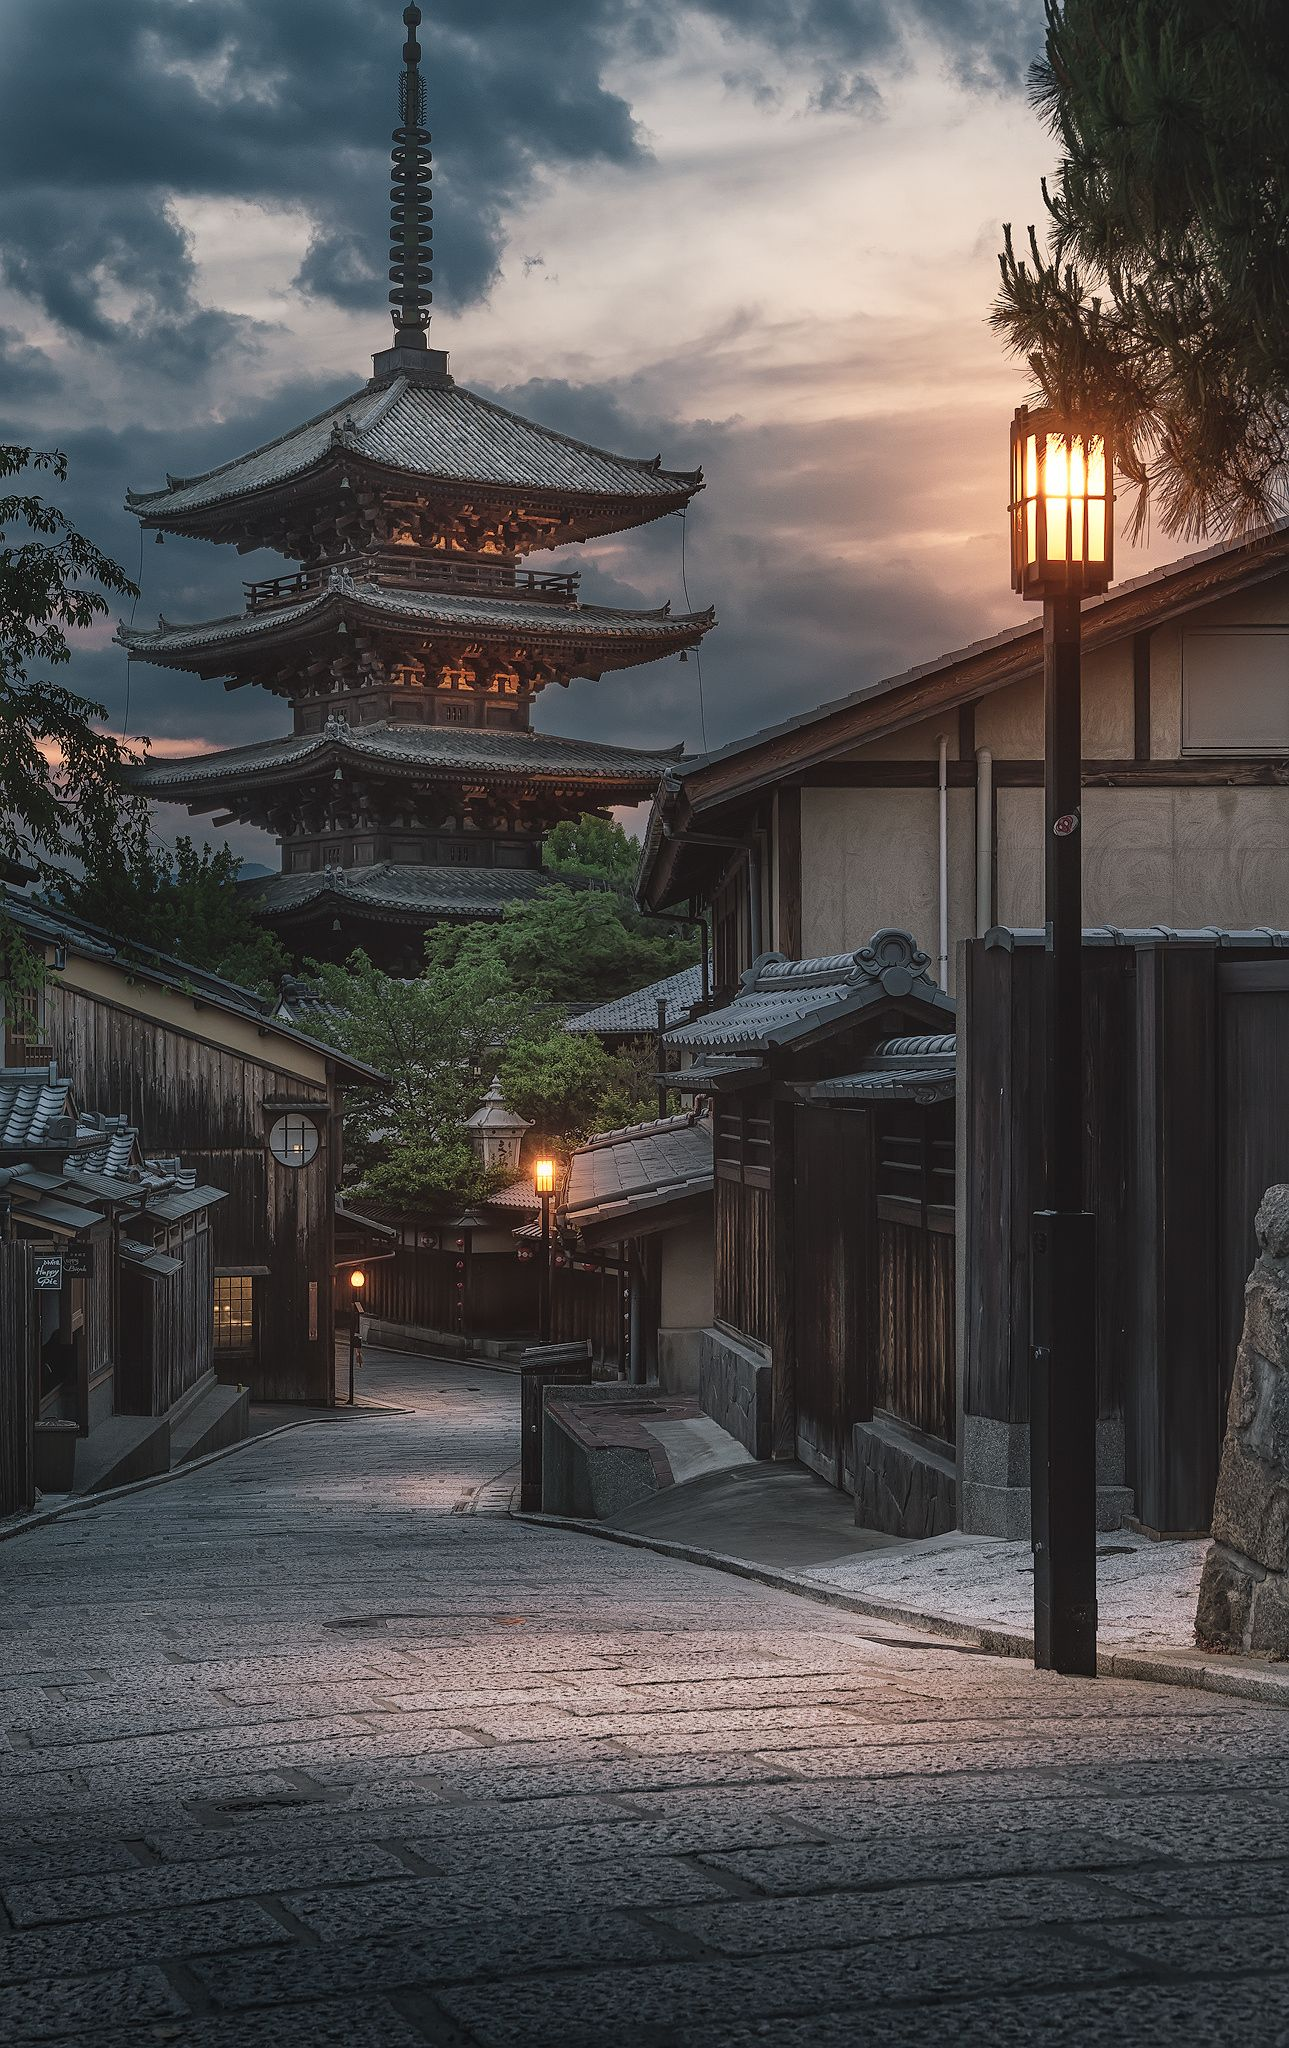 how to write kyoto in japanese